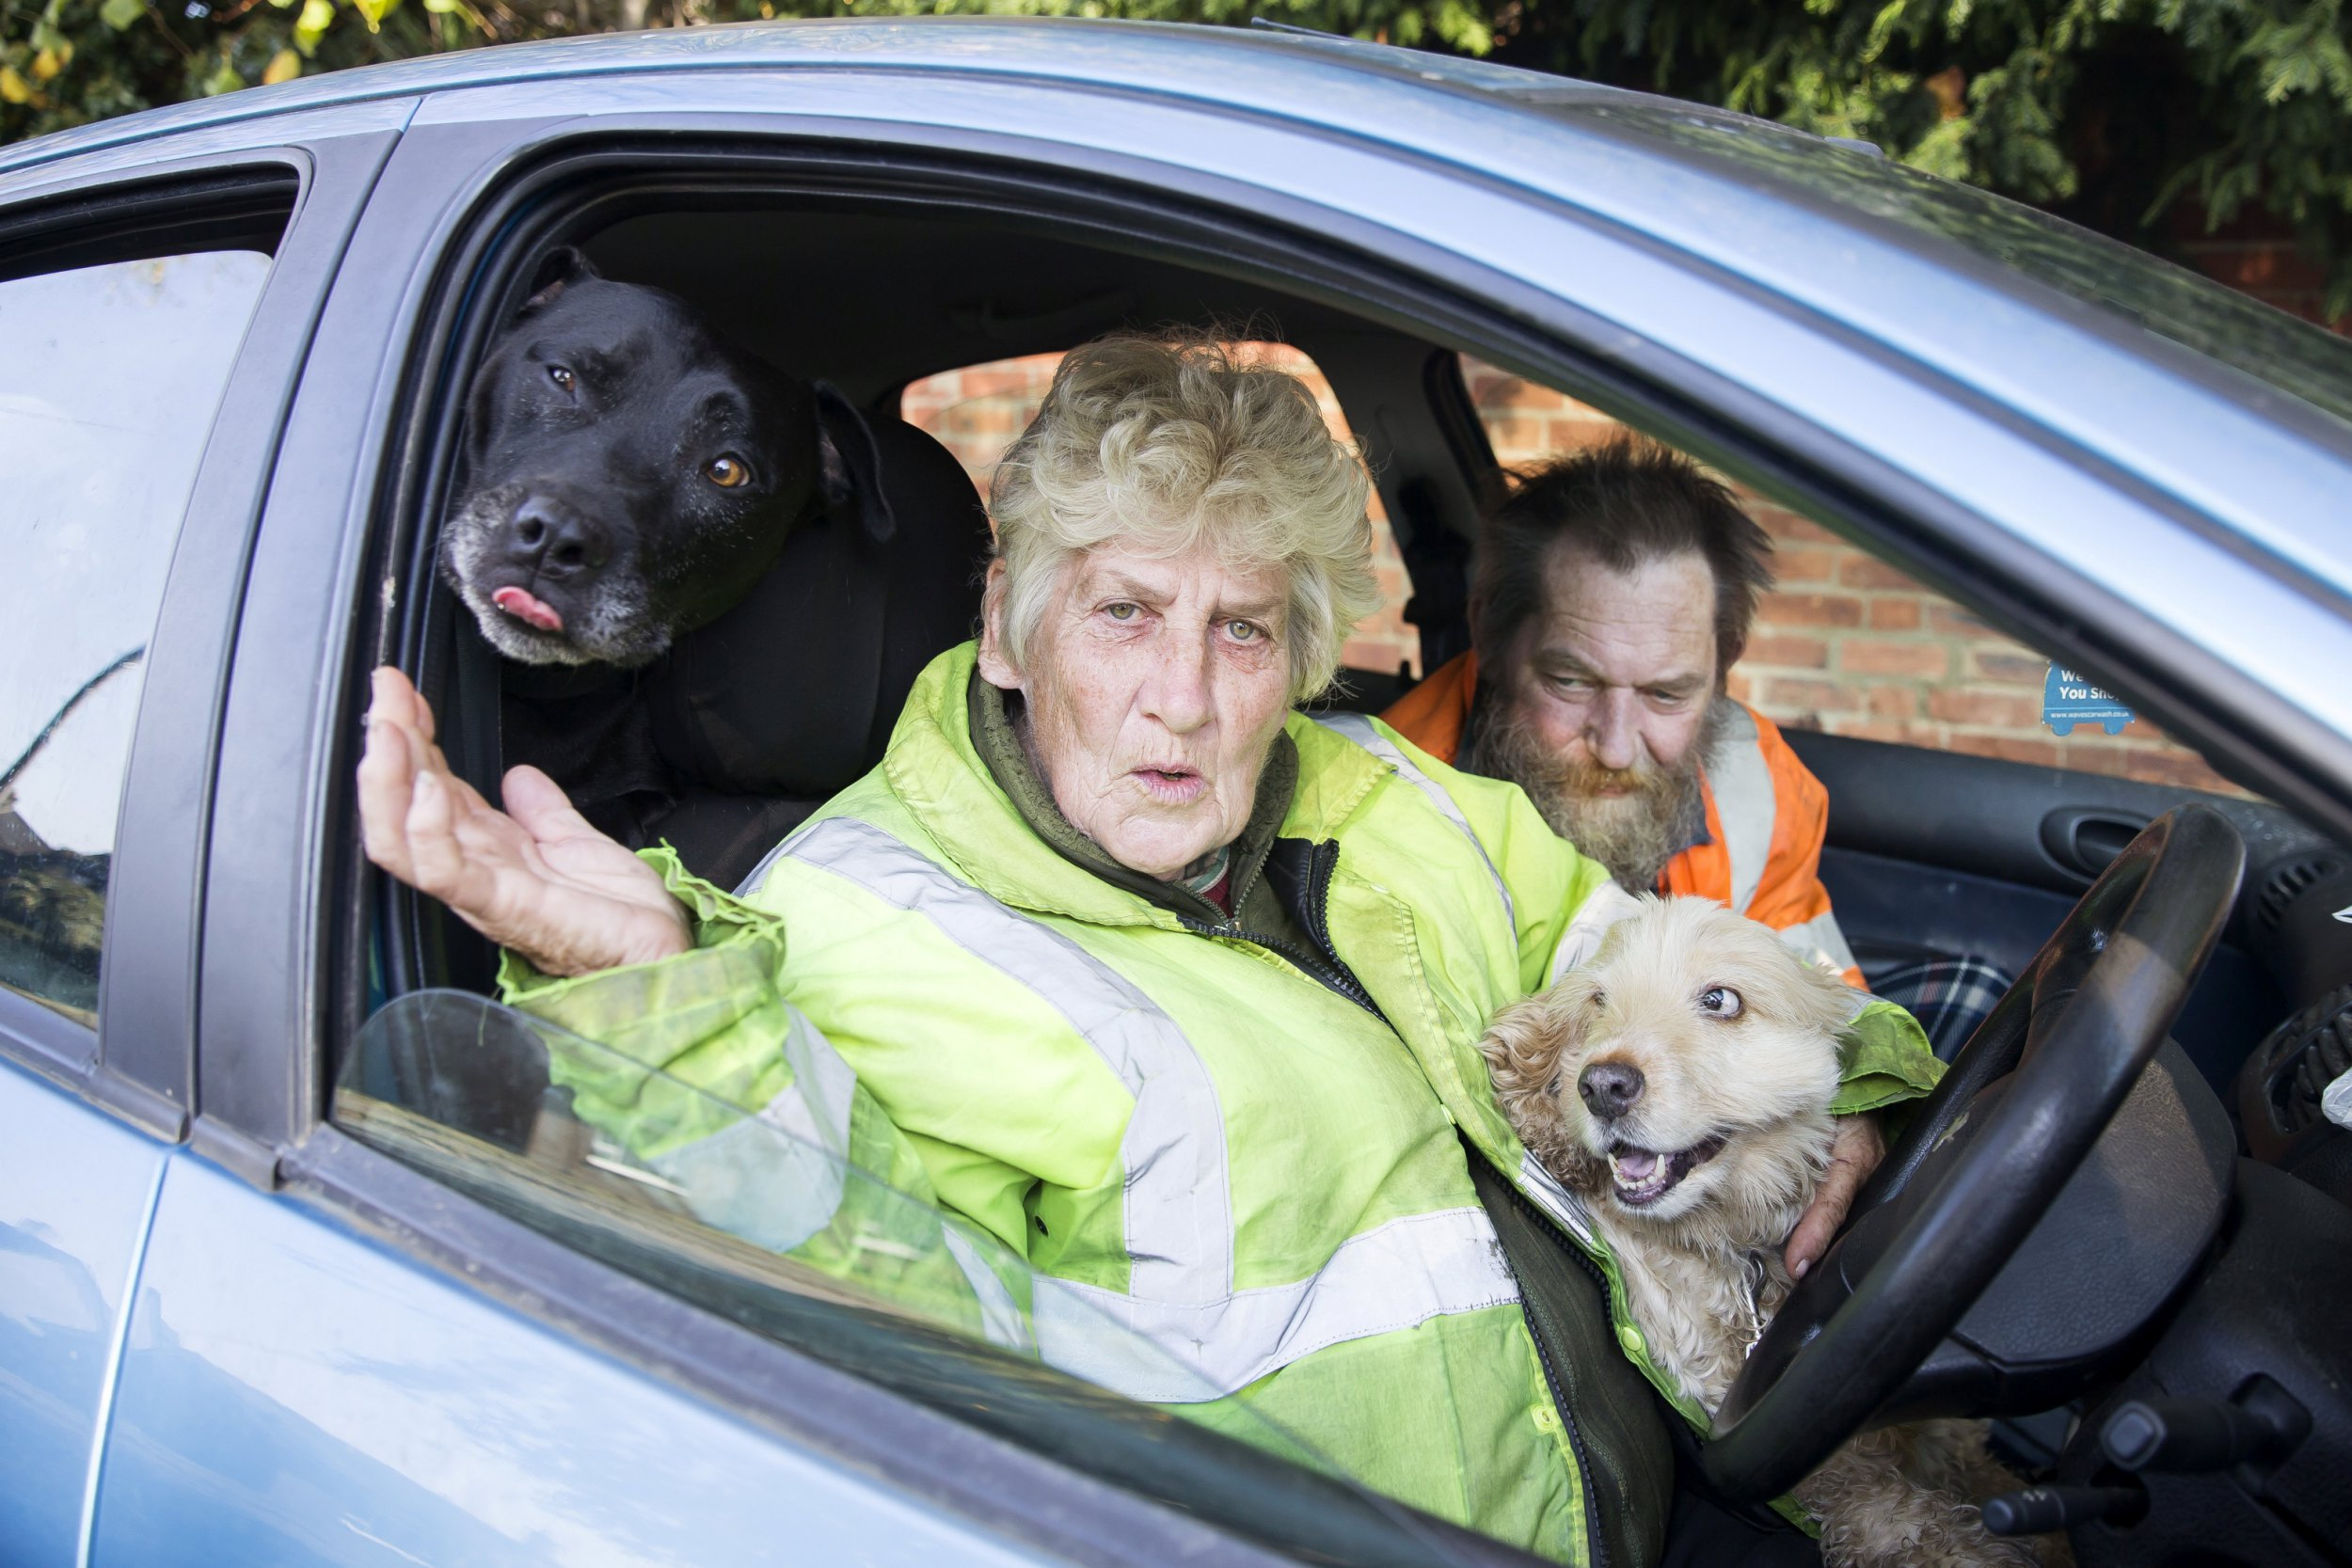 Jen and Nigel Tysoe are homeless and due to having dogs are forced to live in a car. See SWNS story SWMDcar. A Northampton couple who lovingly took in their neighbour's two dogs after they died have been living in the front seats of their Peugeot 208 since July. Jennifer, 70, and husband Nigel Tysoe, 54, have refused to give up cocker spaniel Becky and Staffordshire bull terrier Titan after they made a lifelong promise to their friends when they died to care for their pets. The couple, formerly of Lovat Drive, have lived and worked in Northampton all their lives and had planned to spend a peaceful retirement in their home. But in January this year Nigel had a fall, was unable to continue working and the couple's marital home was repossessed. During their time spent sofa surfing for six months, the pair were hit by repeated setbacks.